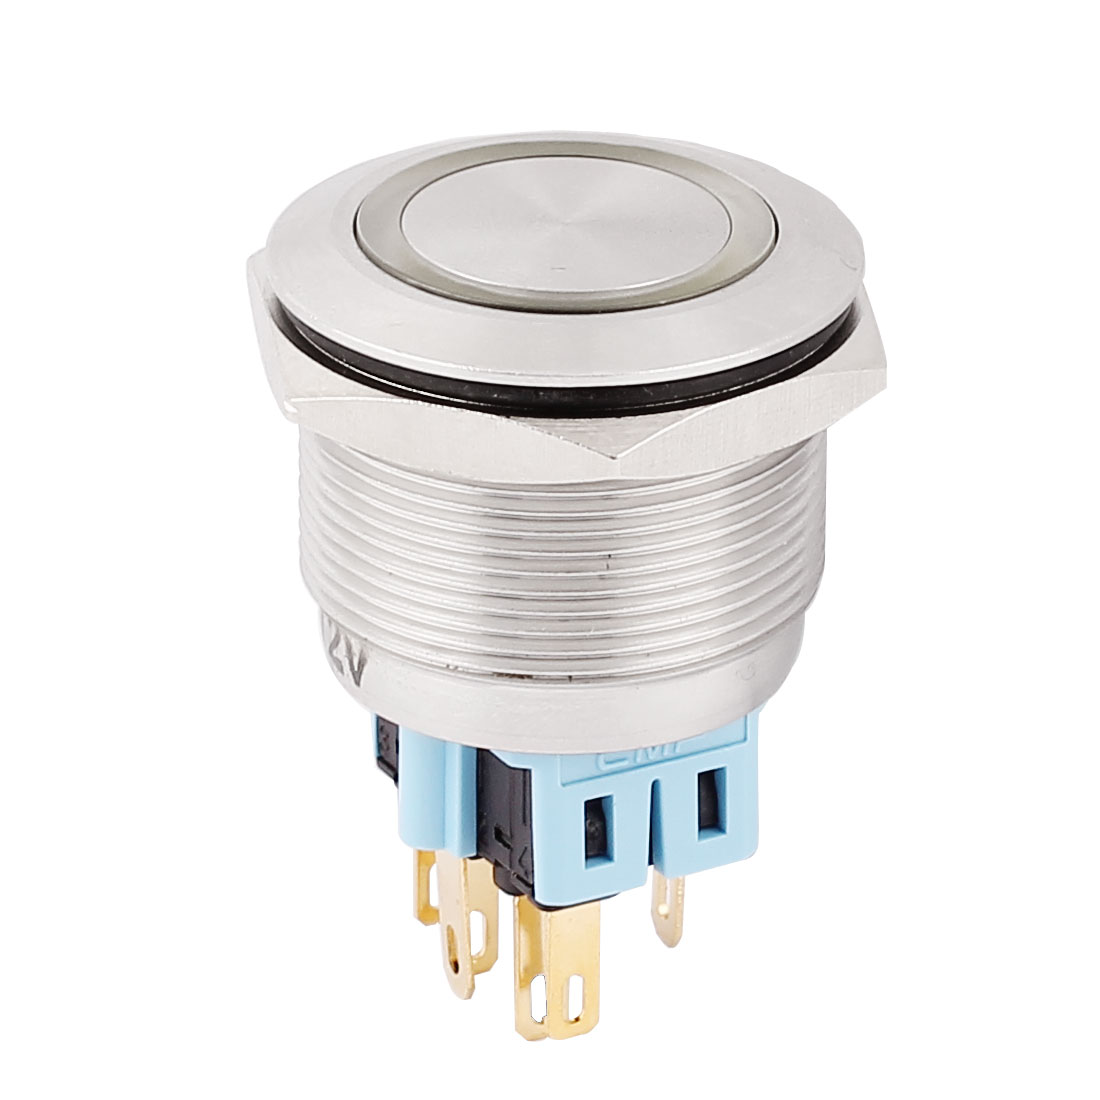 DC 12V 20mm Yellow LED Light 25mm Mounted Thread 6 Pins DPST NO/NC Momentary Push Button Switch